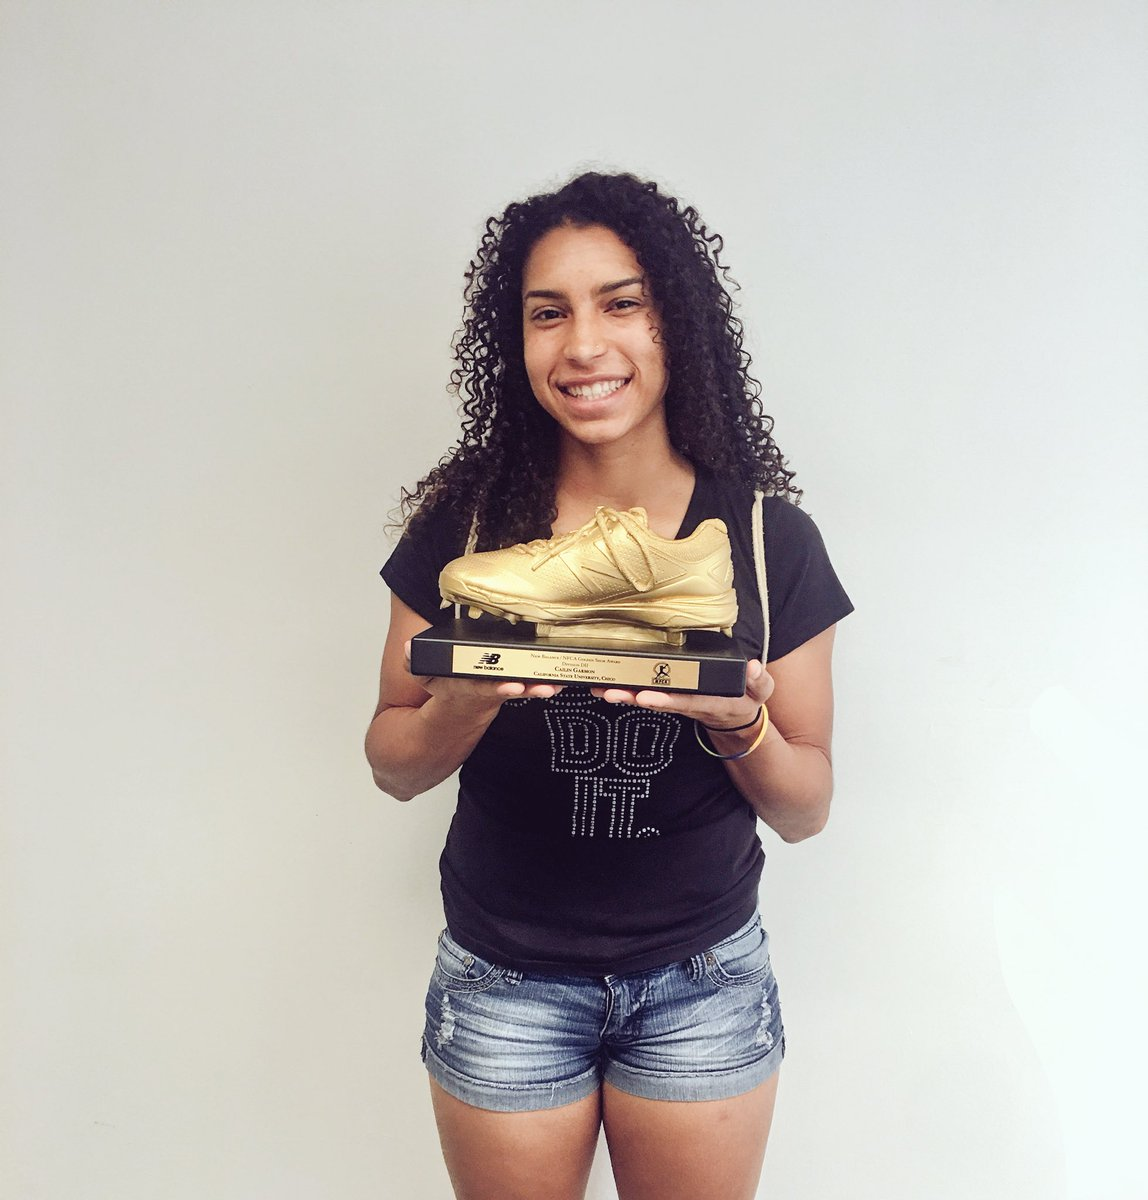 Someone came in to pick up their New Balance Shoe Award. 53 stolen bases on the season while missing 15 games from an injury #legend  <br>http://pic.twitter.com/1h46SxjgYT